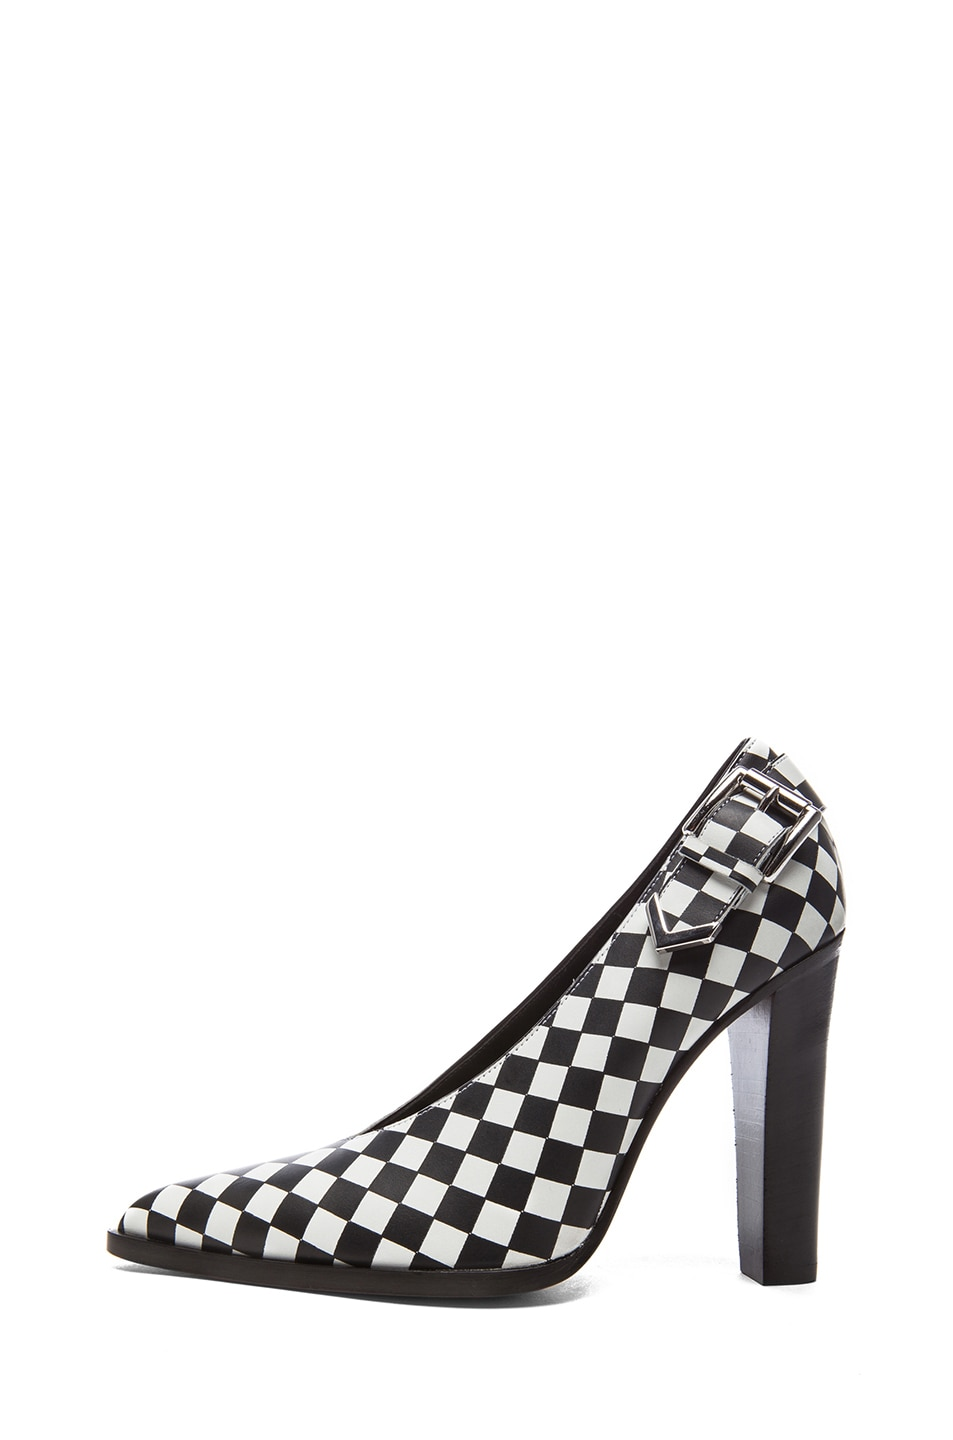 Image 1 of Altuzarra Leather Heels in Check